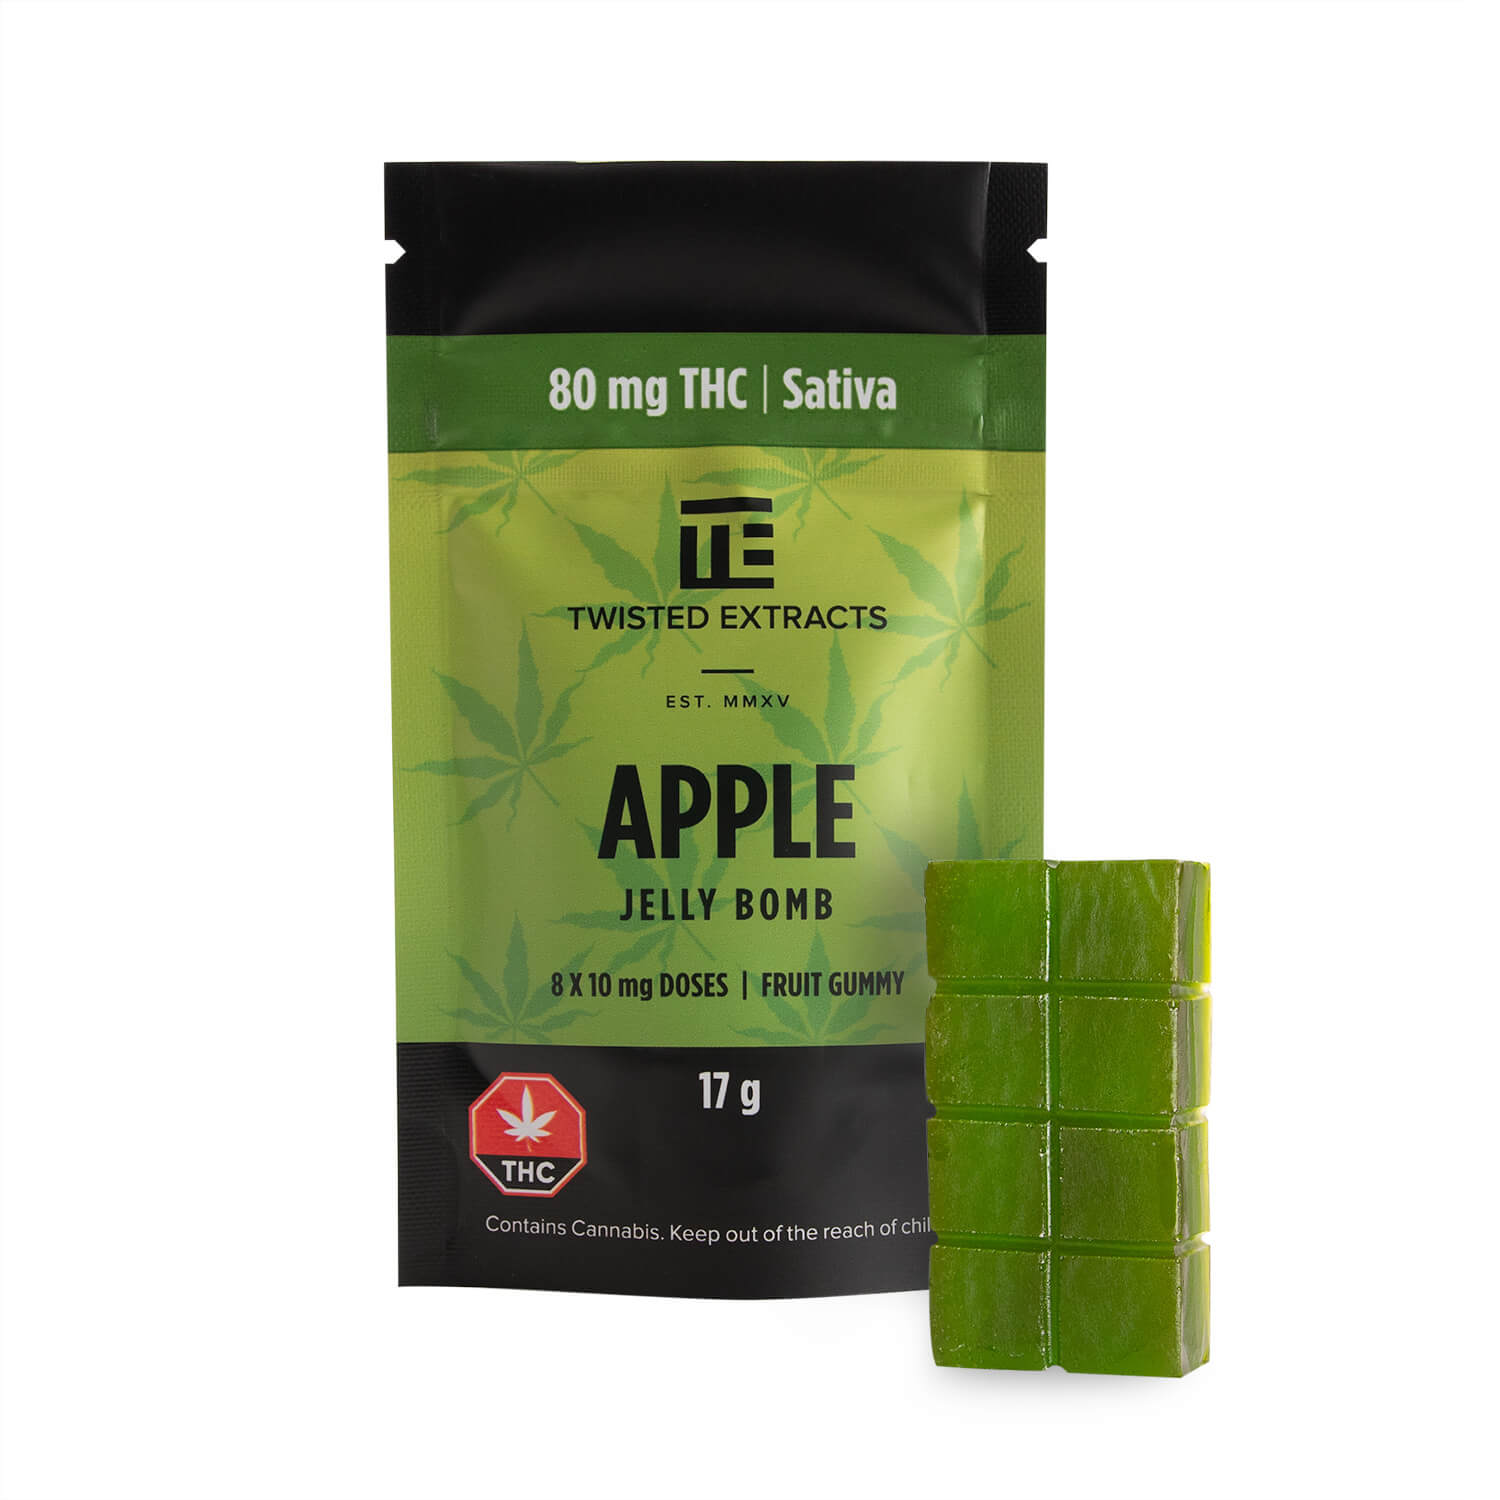 Apple Sativa Jelly Bomb   My Pure Canna   Weed Edibles